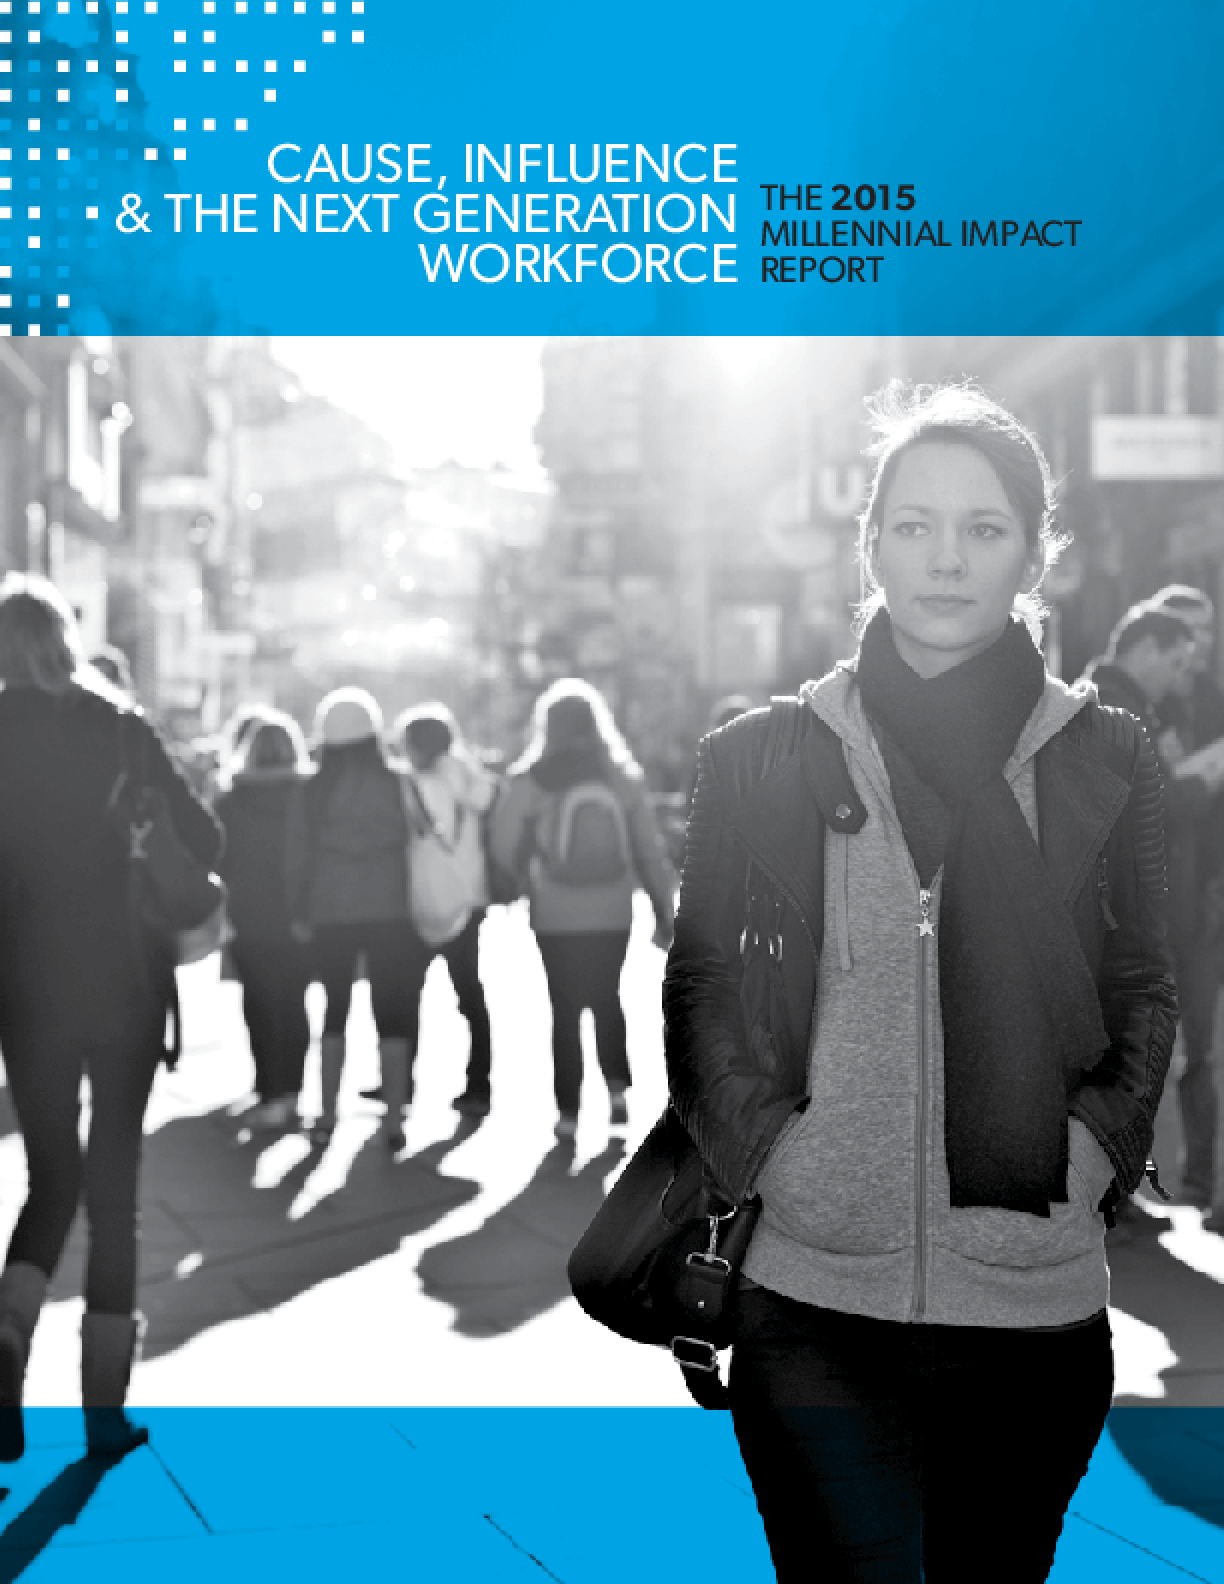 Cause, Influence, and The Next Generation Workforce: The 2015 Millennial Impact Report